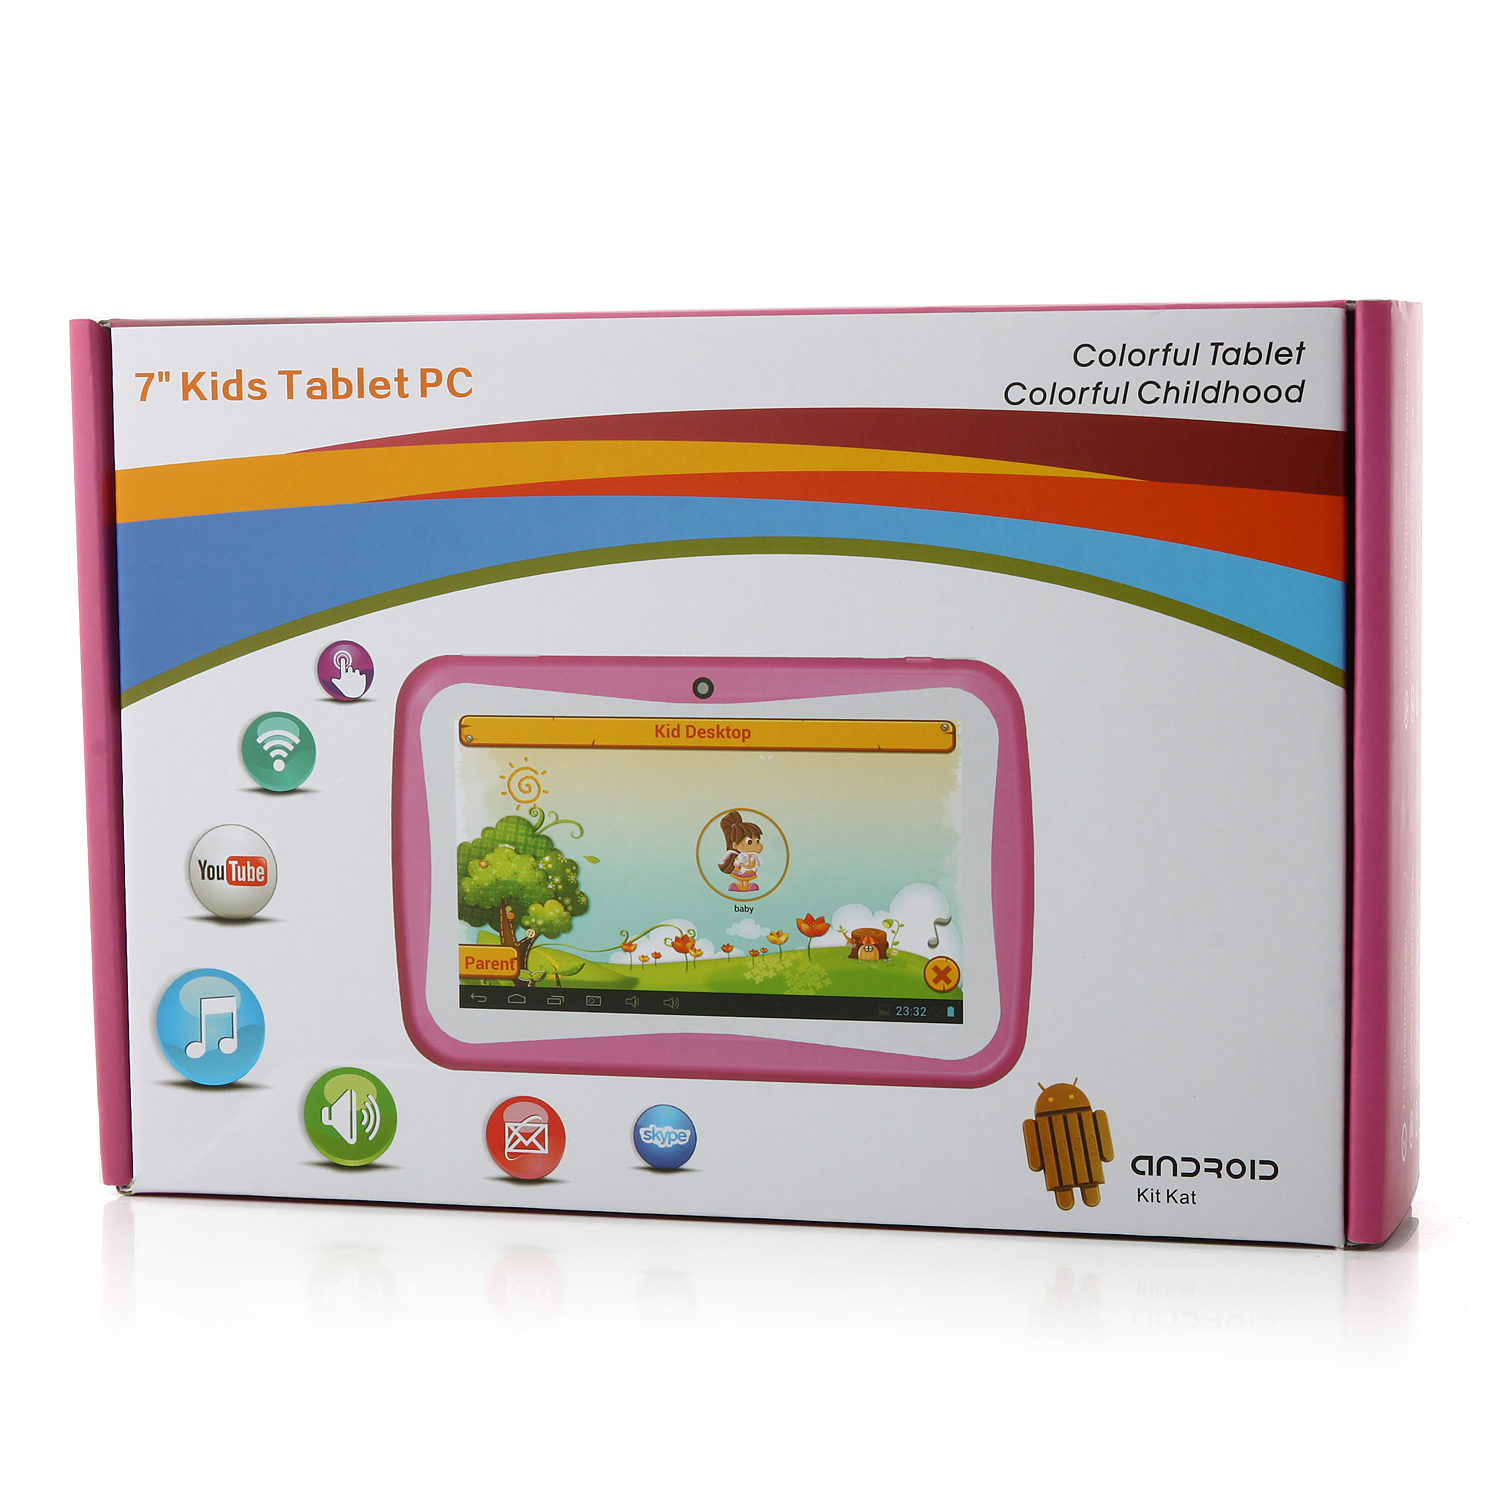 MTP346 R70AC-D KIDS Tablet PC Quad Core RK3126 1.2GHz 7.0 Inch Android 4.4 8GB Rose